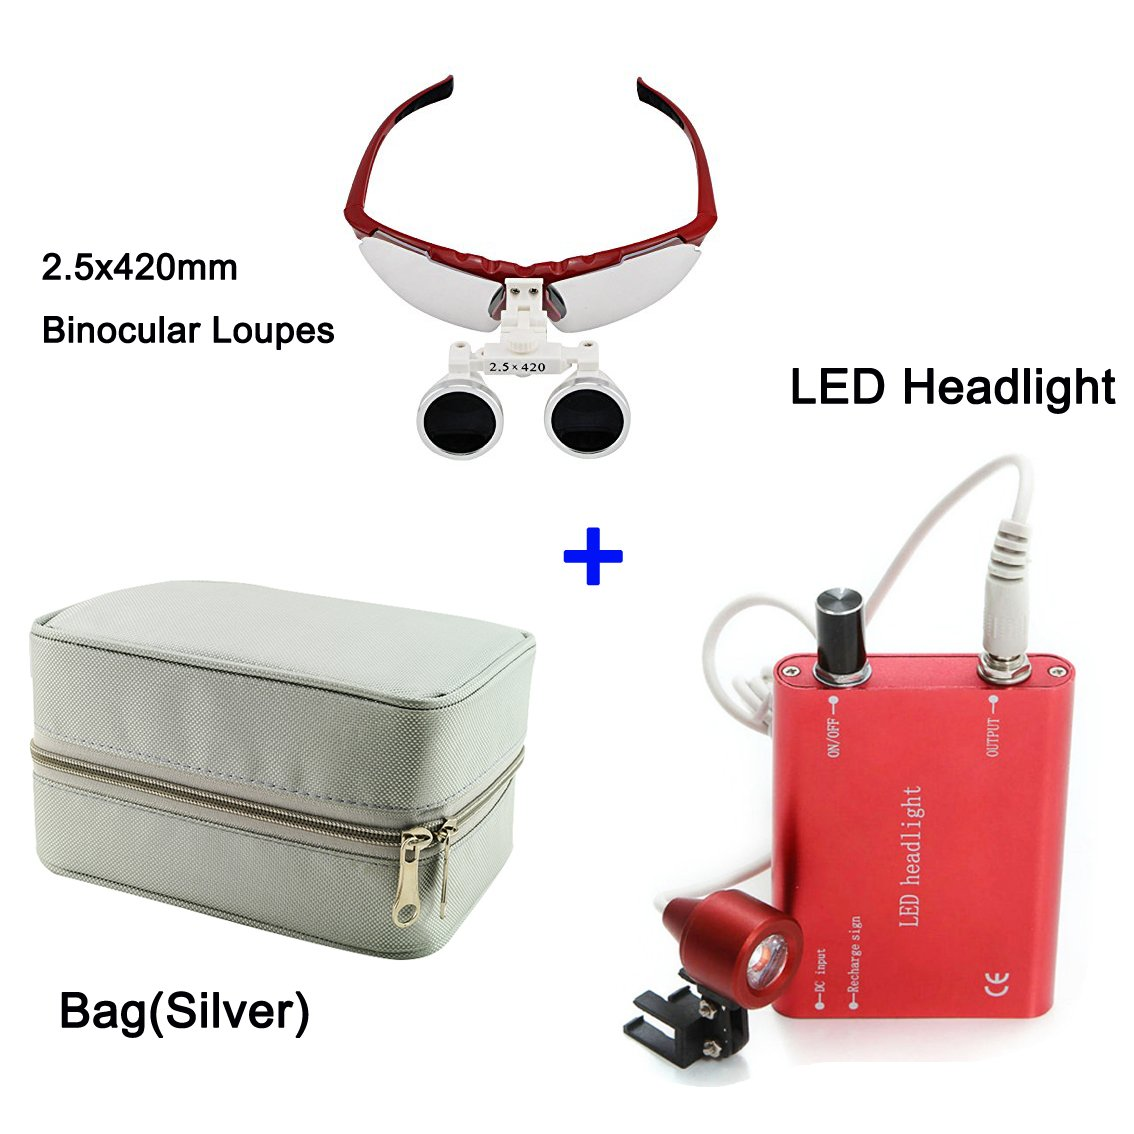 Zinnor 2.5 X 420mm Dental Surgical Medical Binocular Loupes Optical Glass Loupe + LED Head Light Lamp + Carry Bag (Silver)